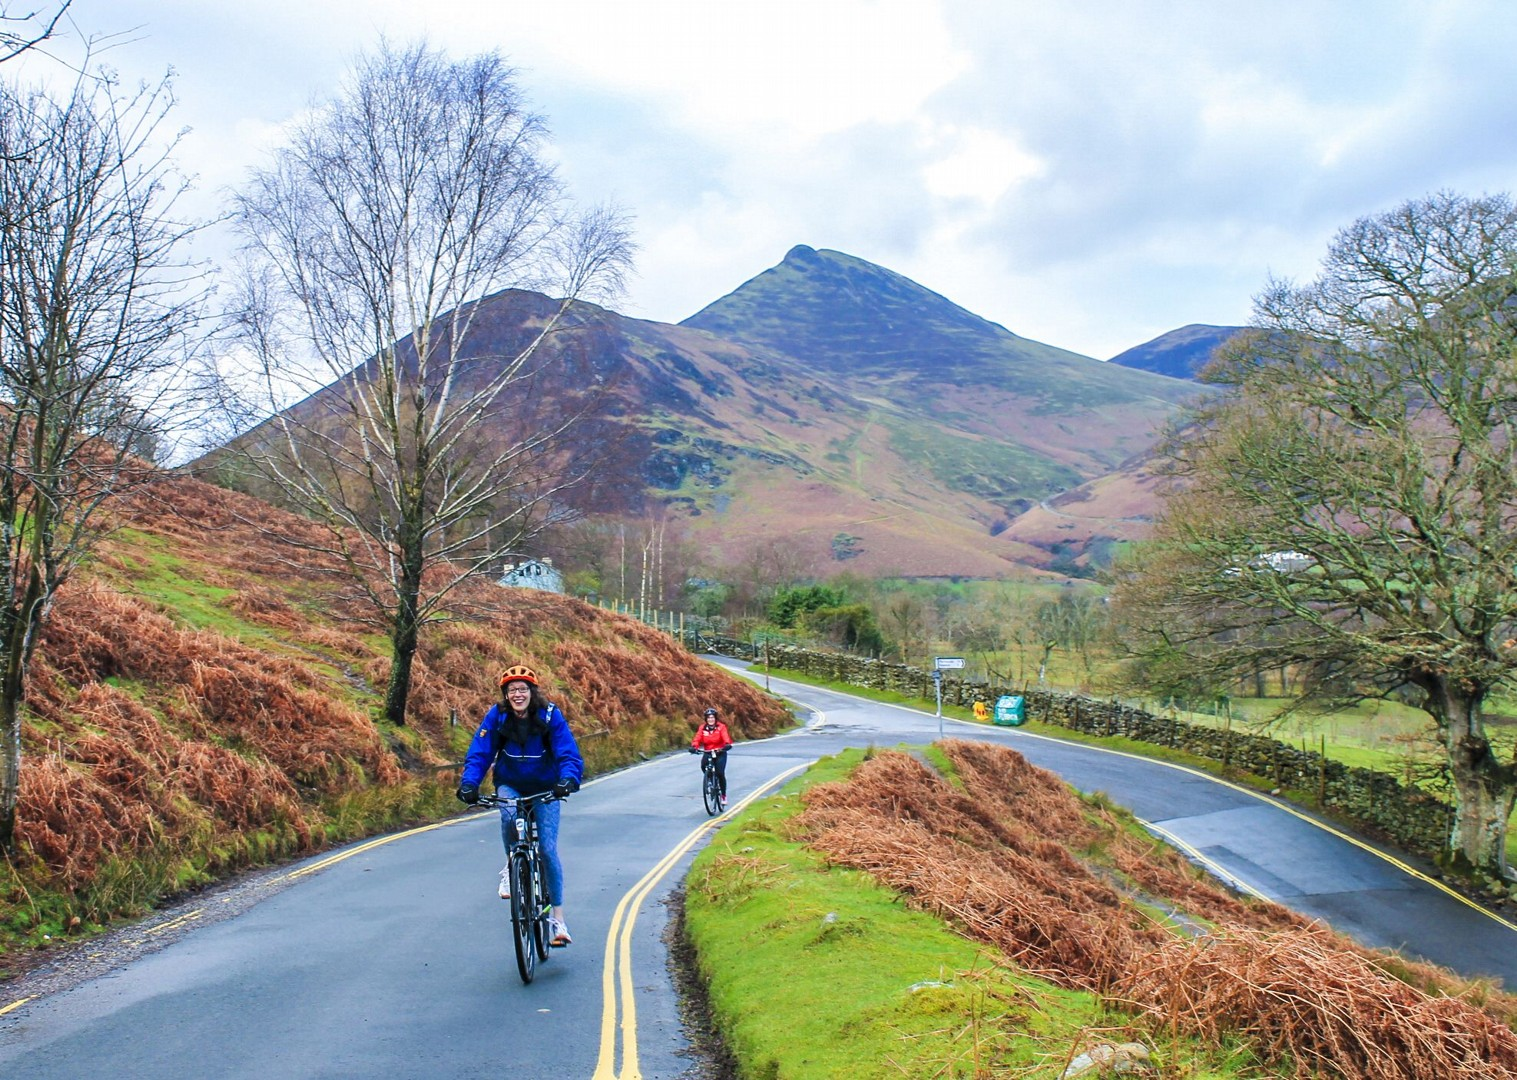 lake-district-fells-countryside-nature-relaxing-cycle-tour.jpg - UK - Lake District - Derwent Water - Self-Guided Leisure Cycling Holiday - Leisure Cycling